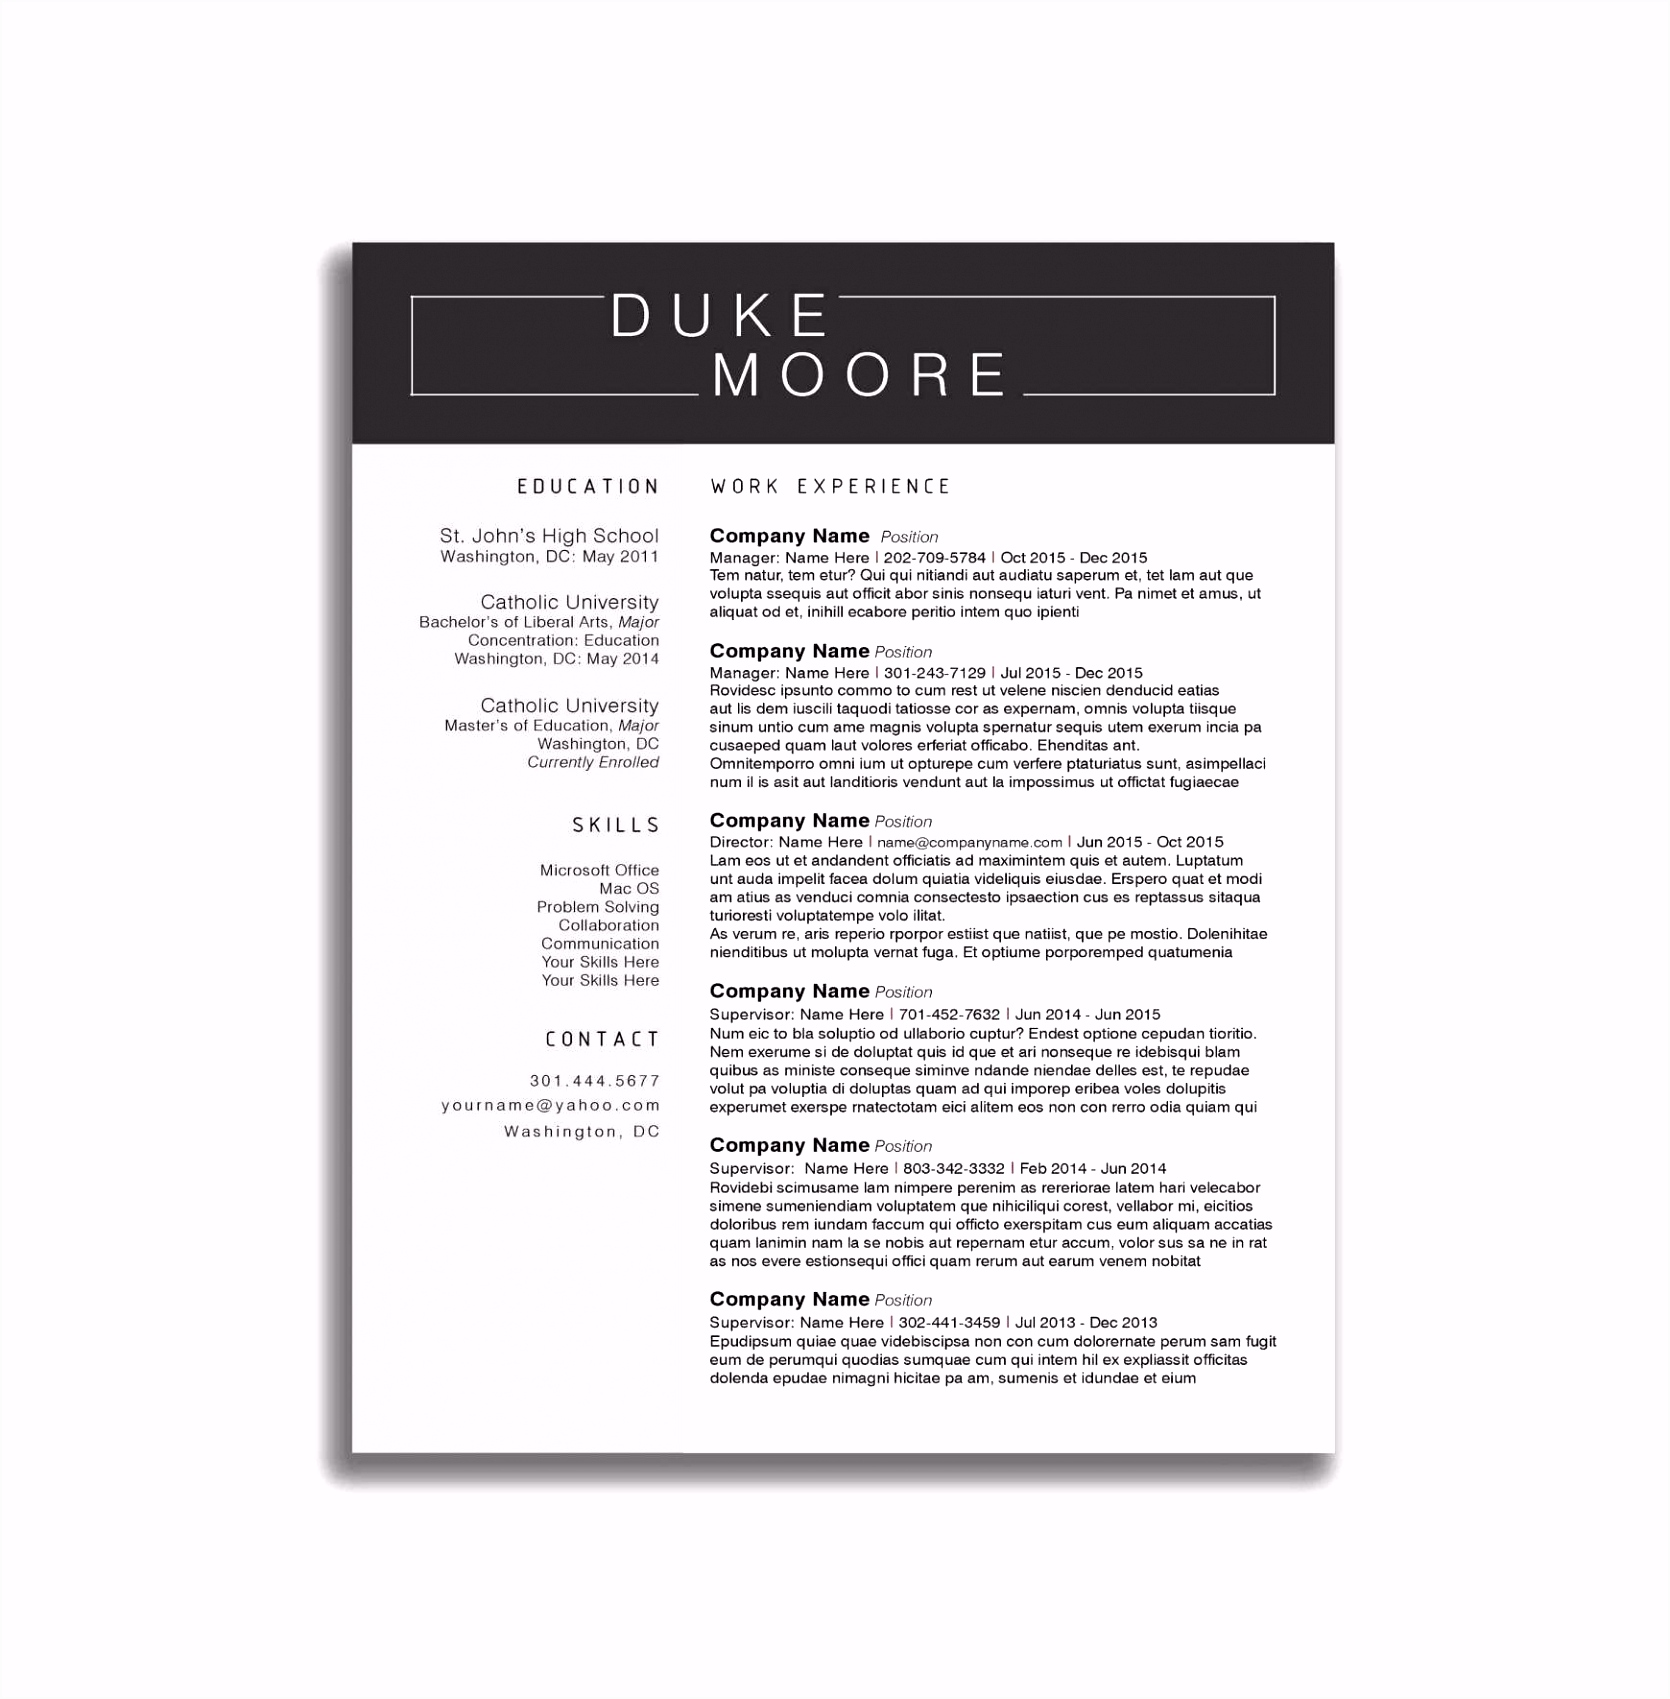 Microsoft Word Marketing Plan Template Unique Luxury Madeline Hunter